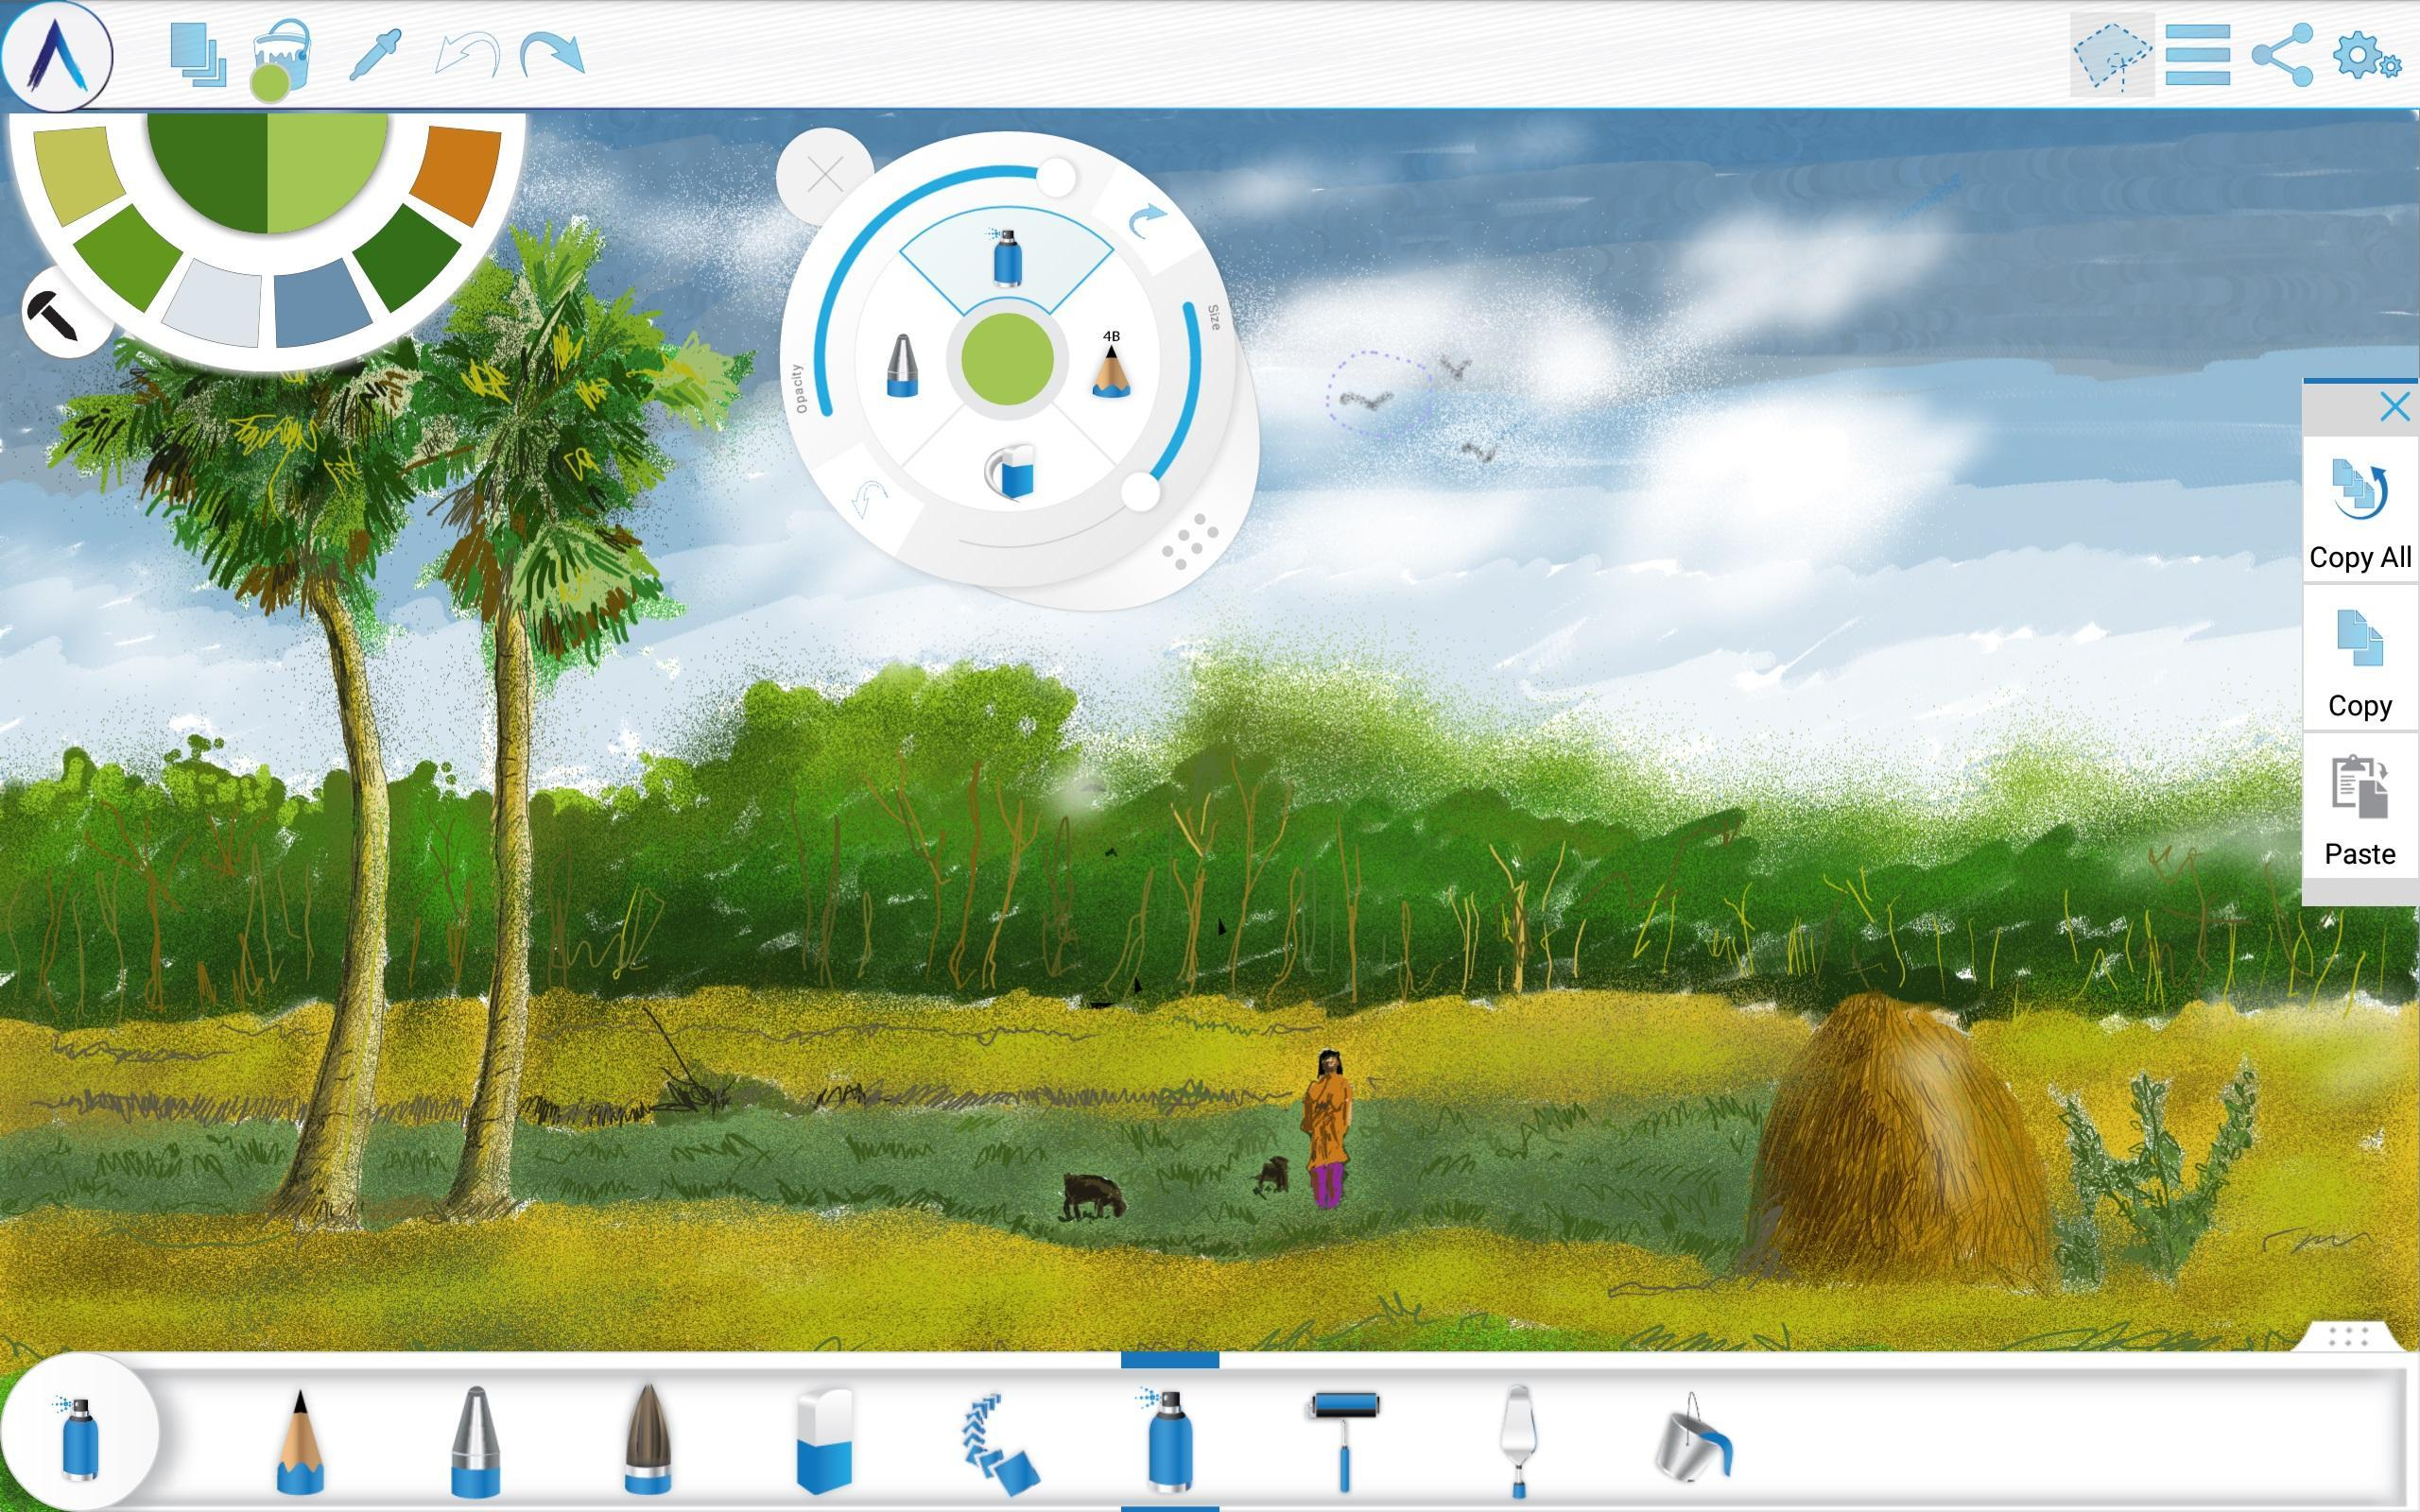 Artecture Draw, Sketch, Paint 5.2.0.4 Screenshot 21